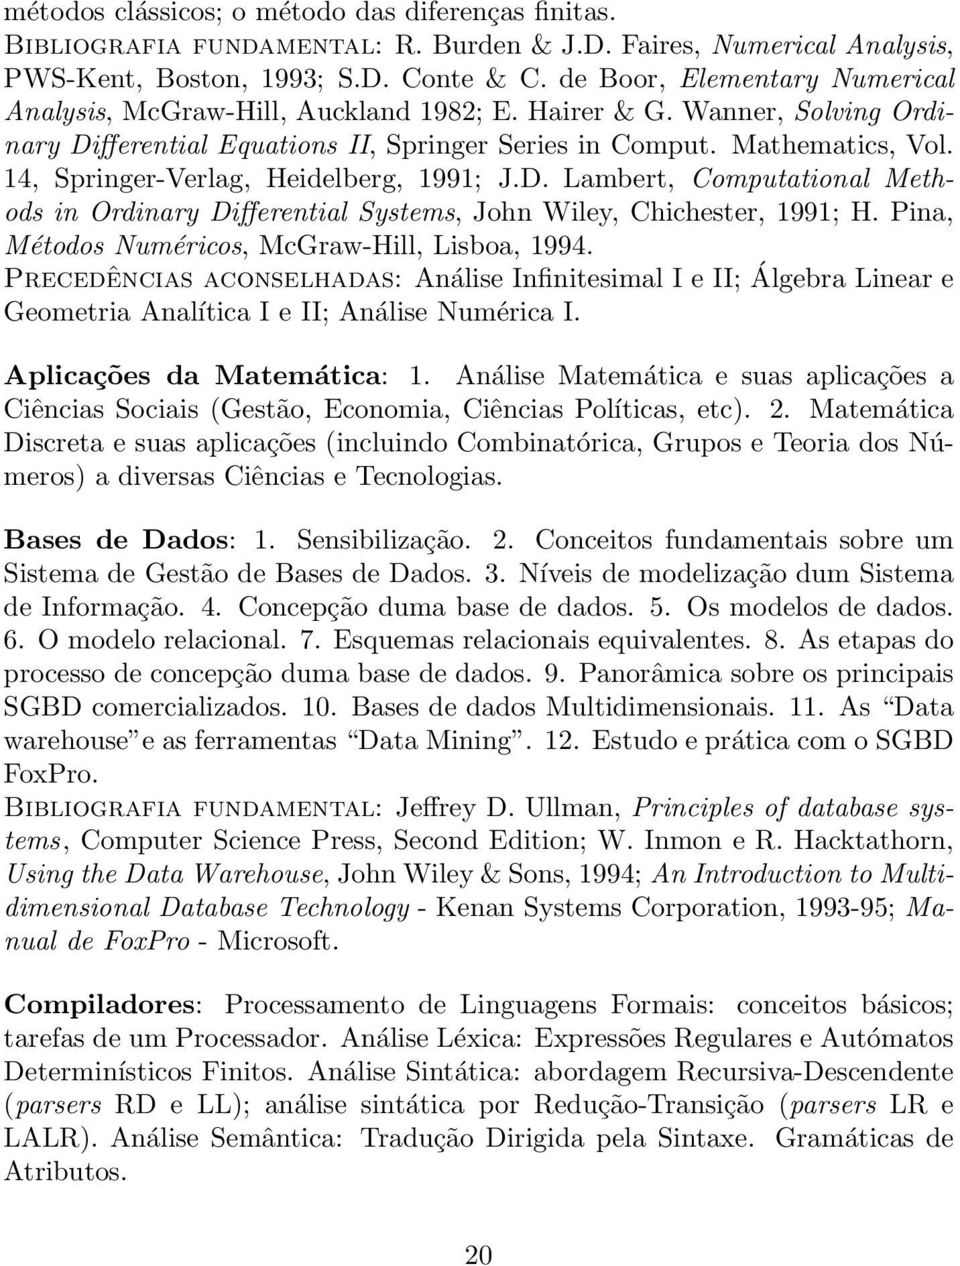 14, Springer-Verlag, Heidelberg, 1991; J.D. Lambert, Computational Methods in Ordinary Differential Systems, John Wiley, Chichester, 1991; H. Pina, Métodos Numéricos, McGraw-Hill, Lisboa, 1994.